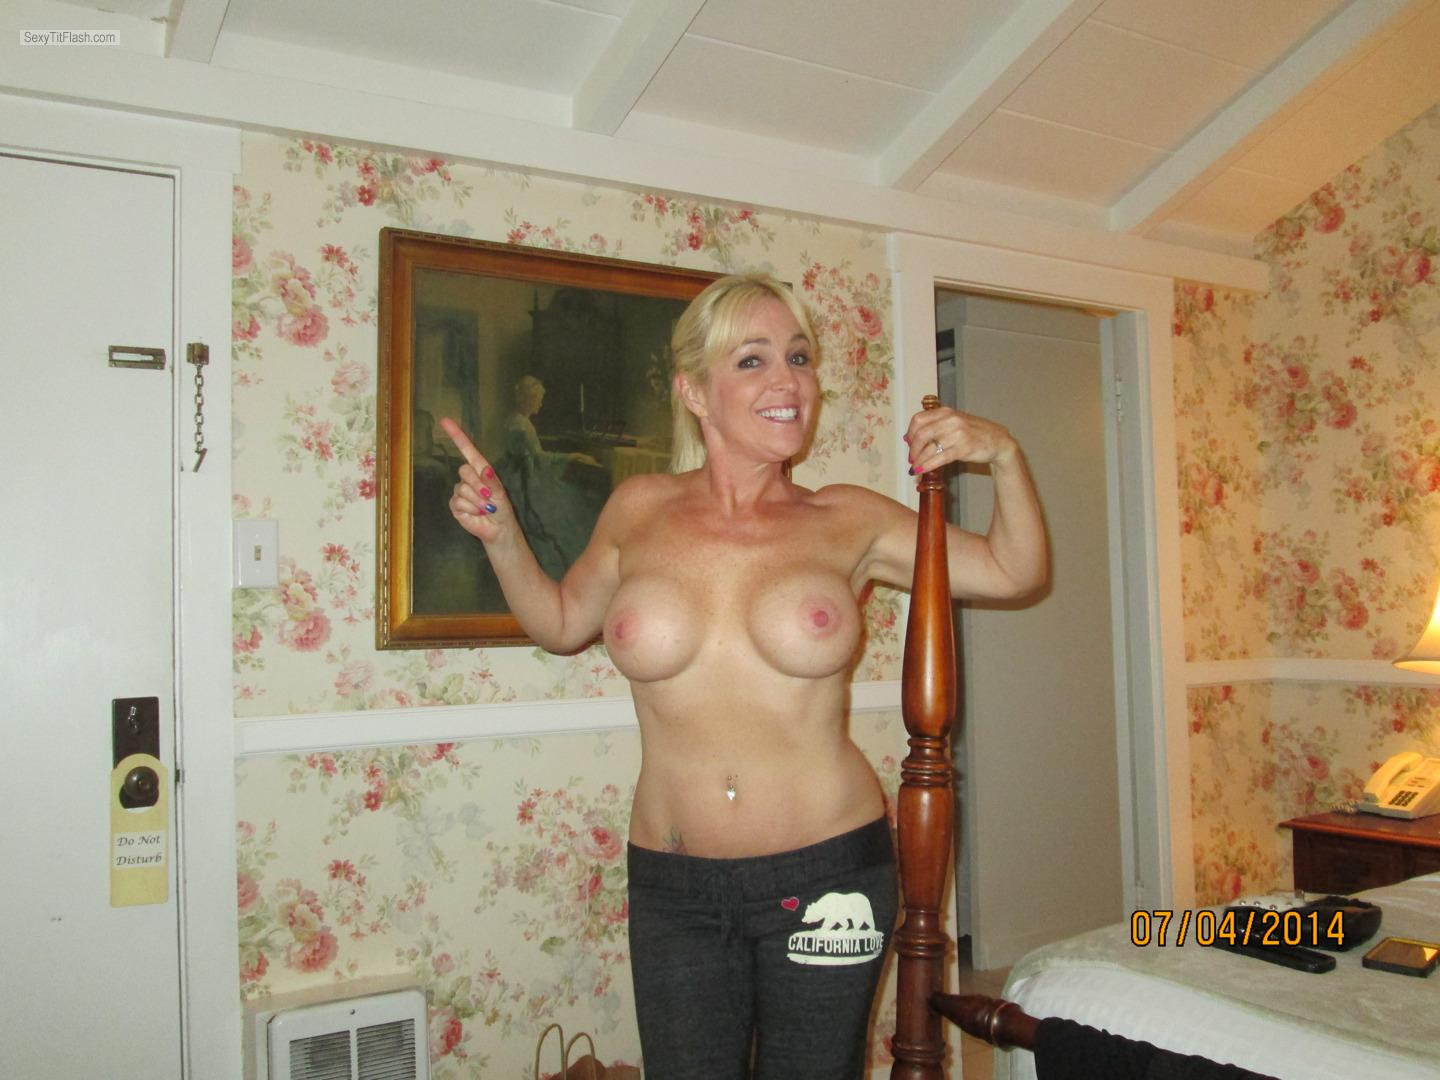 Tit Flash: Wife's Big Tits - Topless Thotchic from United States